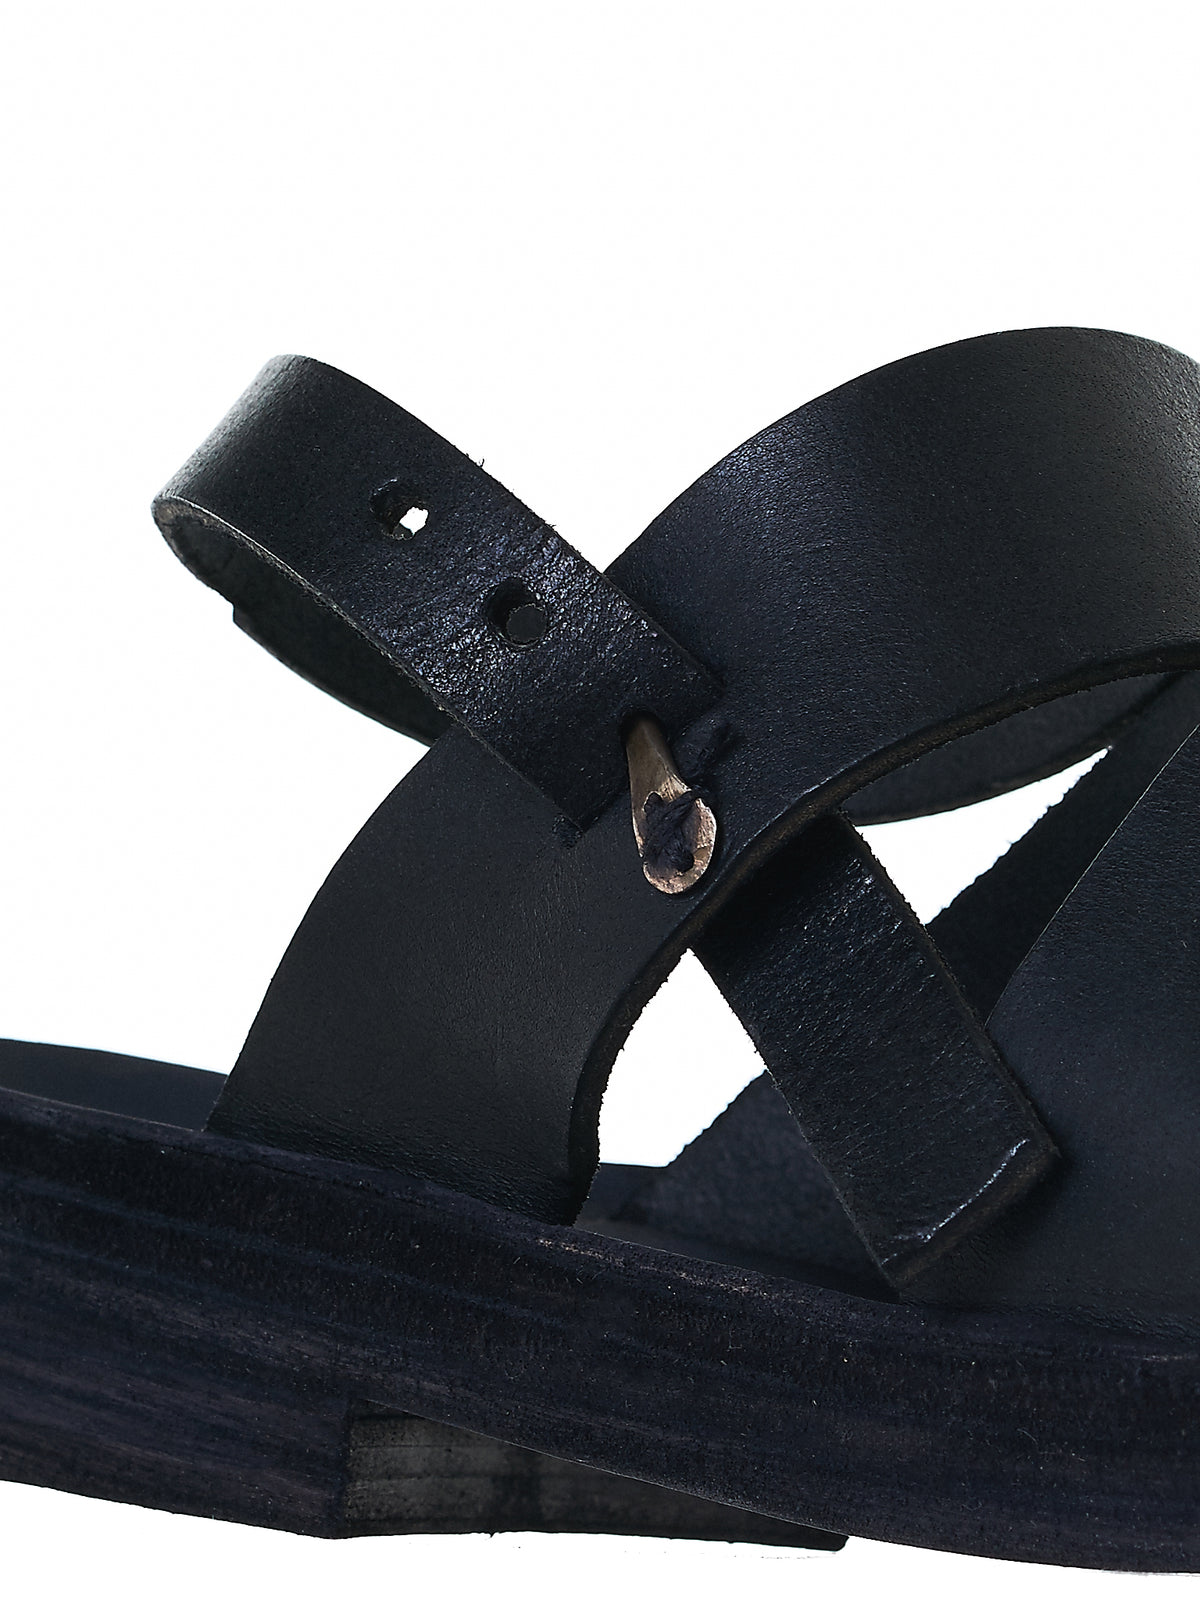 Buckled Leather Sandals (S4S4 GR 3.0 BLACK)